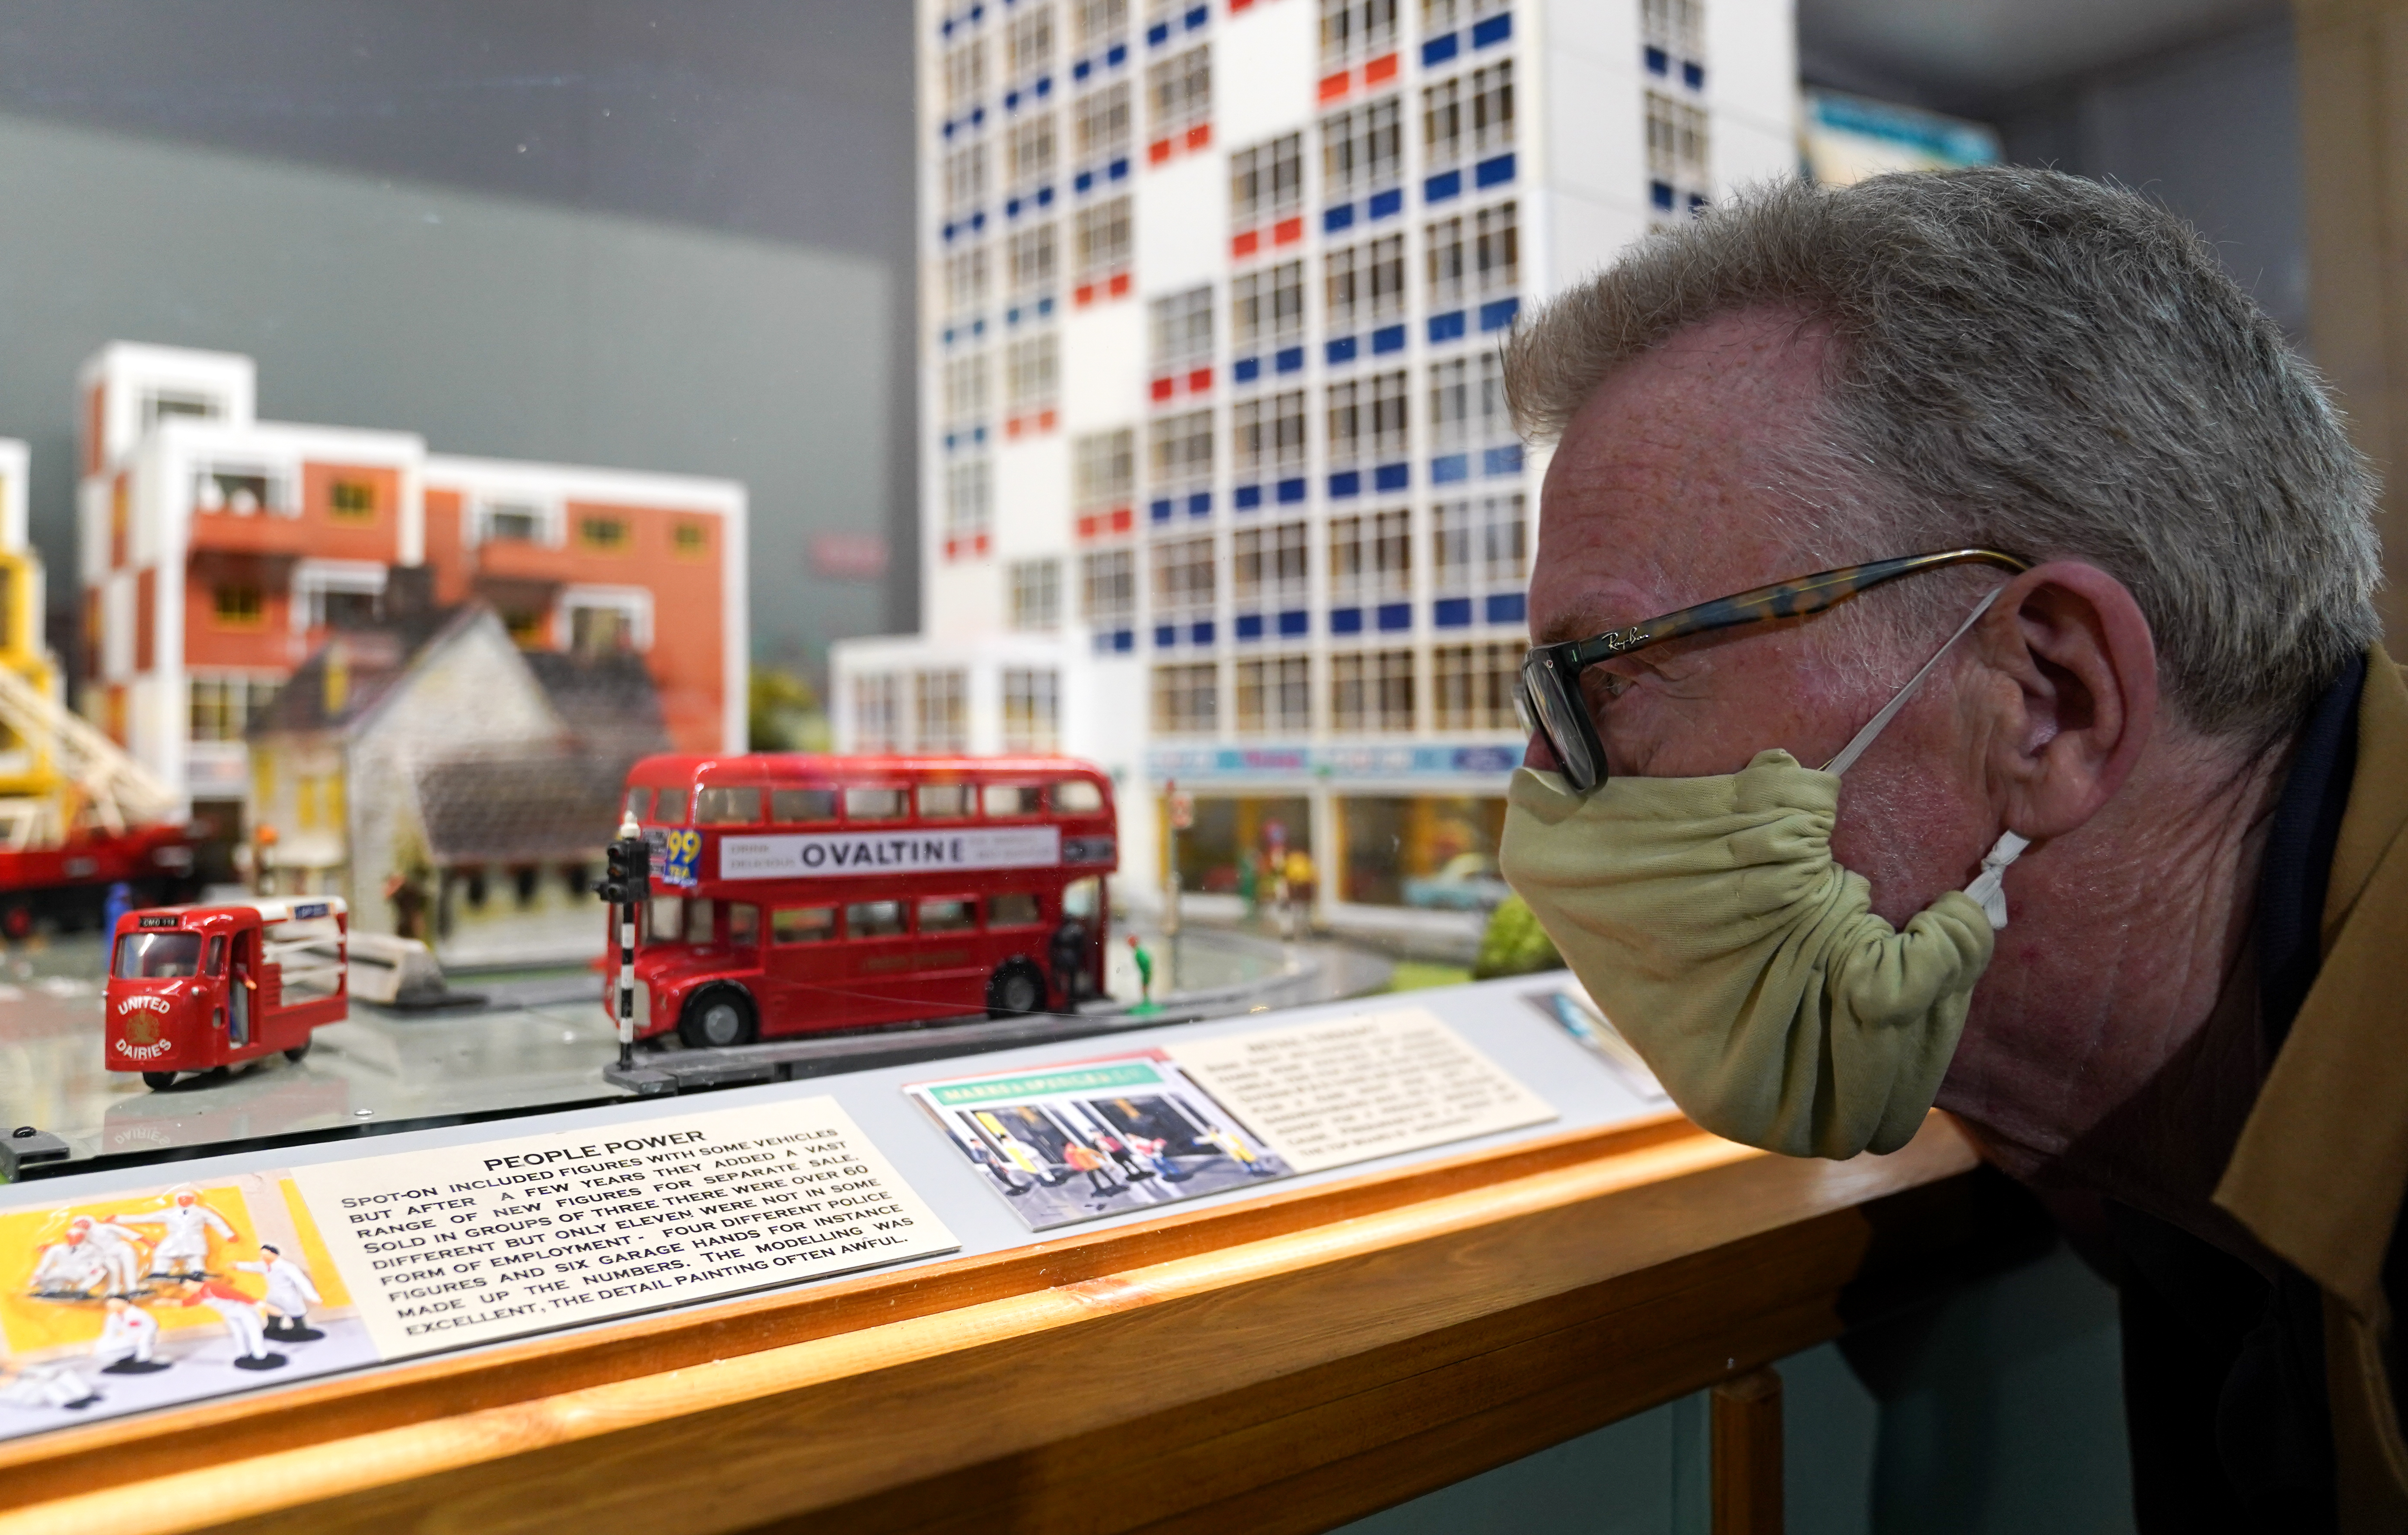 <p>Greg Hoar looks at a display case featuring Arkitex and Spot-On models during a preview for 'Life before Lego', a new exhibition of Britain's best remembered building toys, which will open to the public on June 30 at Wimborne Model Town and Gardens in Wimborne Minster, Dorset. Picture date: Wednesday June 23, 2021.</p>